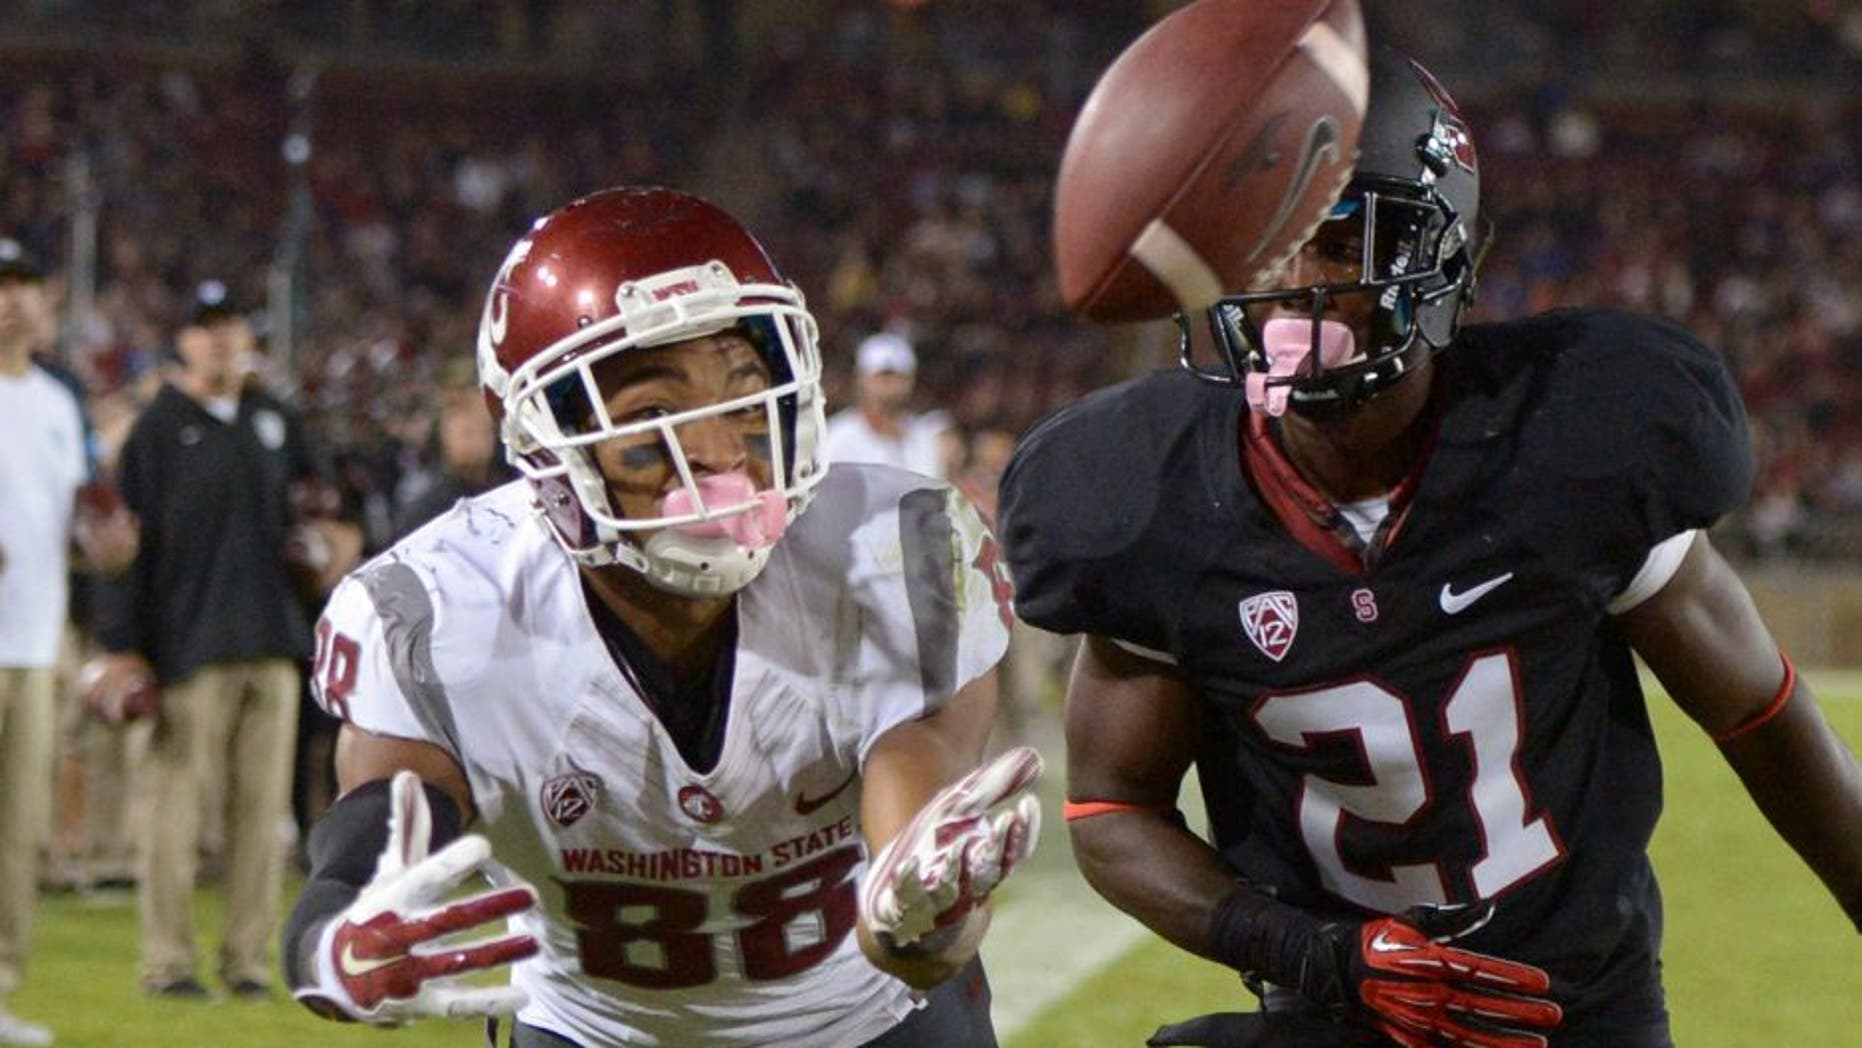 Oct 10, 2014; Stanford, CA, USA; Washington State Cougars receiver Isiah Myers (88) is defended by Stanford Cardinal cornerback Ronnie Harris (21) at Stanford Stadium. Stanford defeated Washington State 34-17. Mandatory Credit: Kirby Lee-USA TODAY Sports